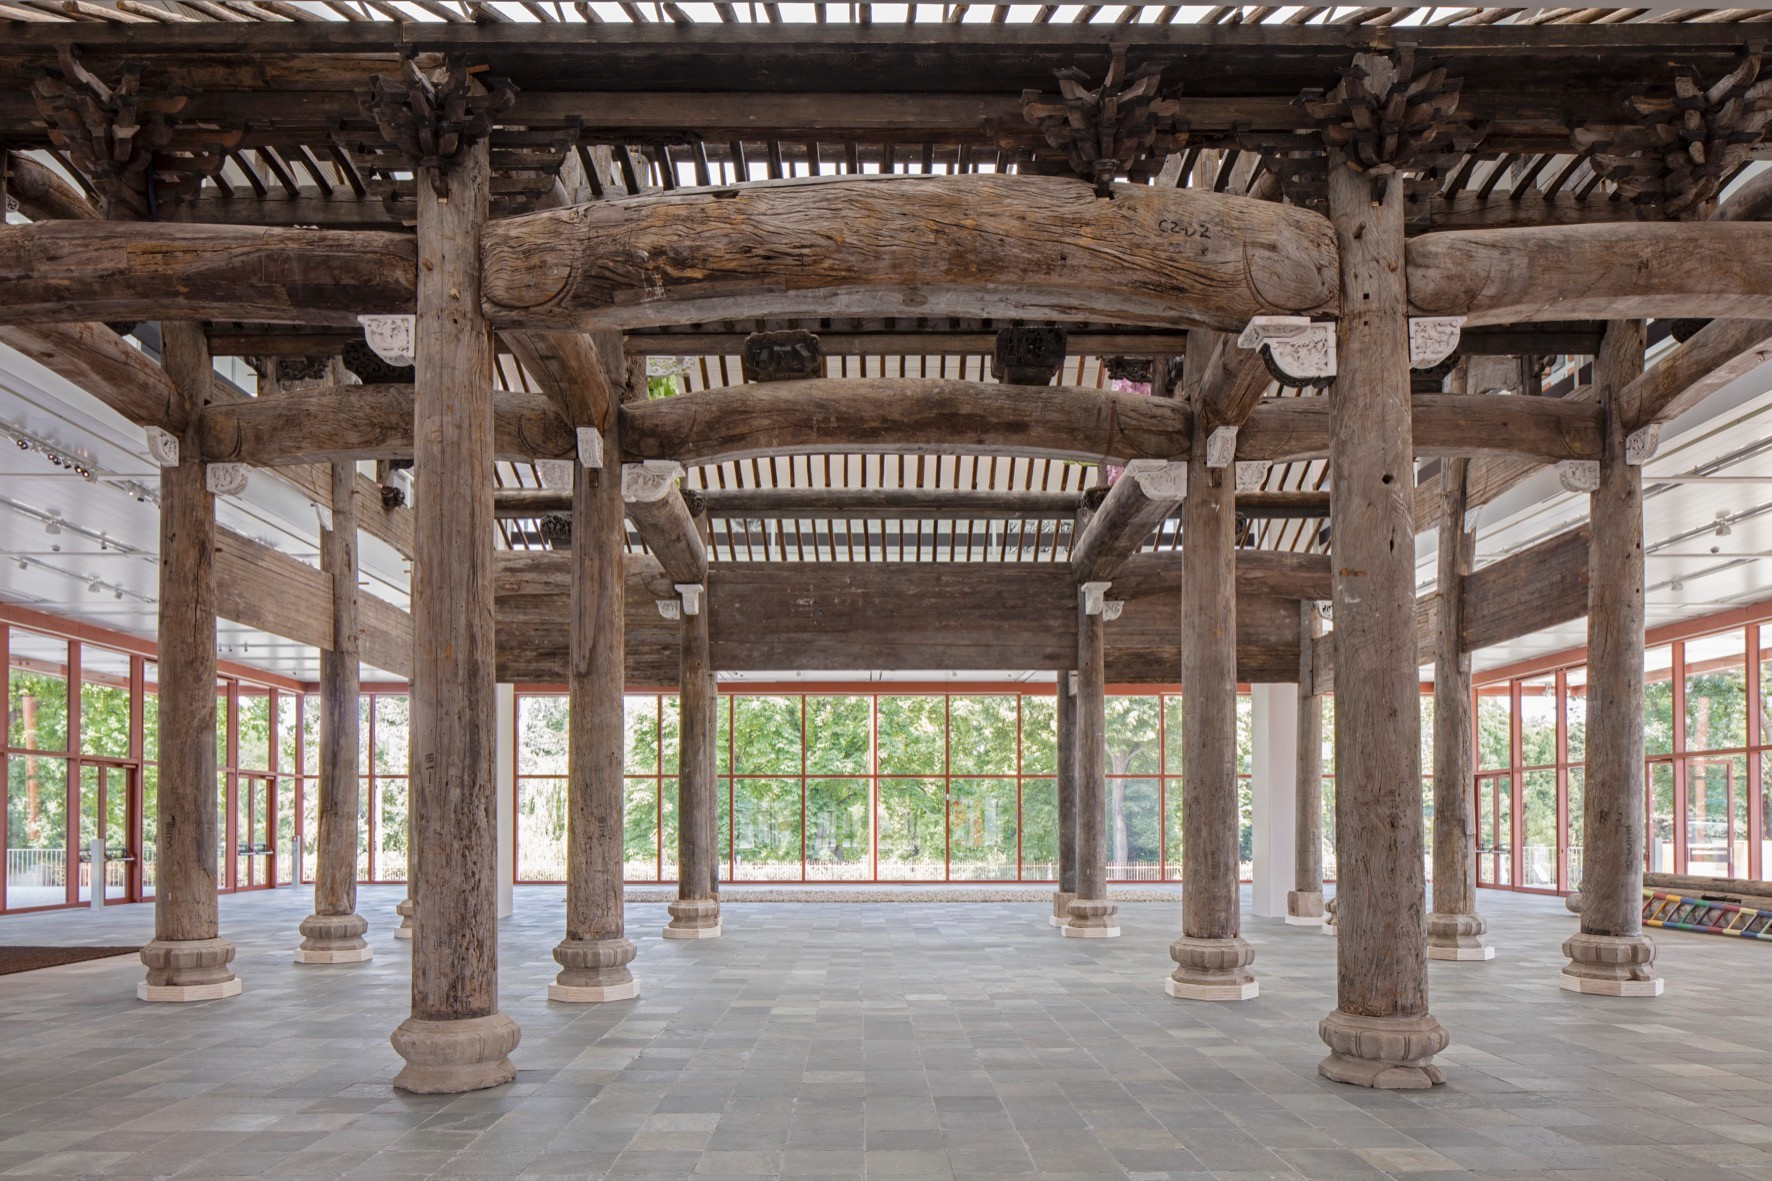 Image: Ai Weiwei, Wang Family Ancestral Hall, 2015. Over 1,000 pieces of various wooden building elements from late Ming-Dynasty (1368-1644) with original carvings and painted replacements, 1,364.7 x 1,451 x 939 cm. © Ai Weiwei Studio. Photo: © Belvedere, Vienna.